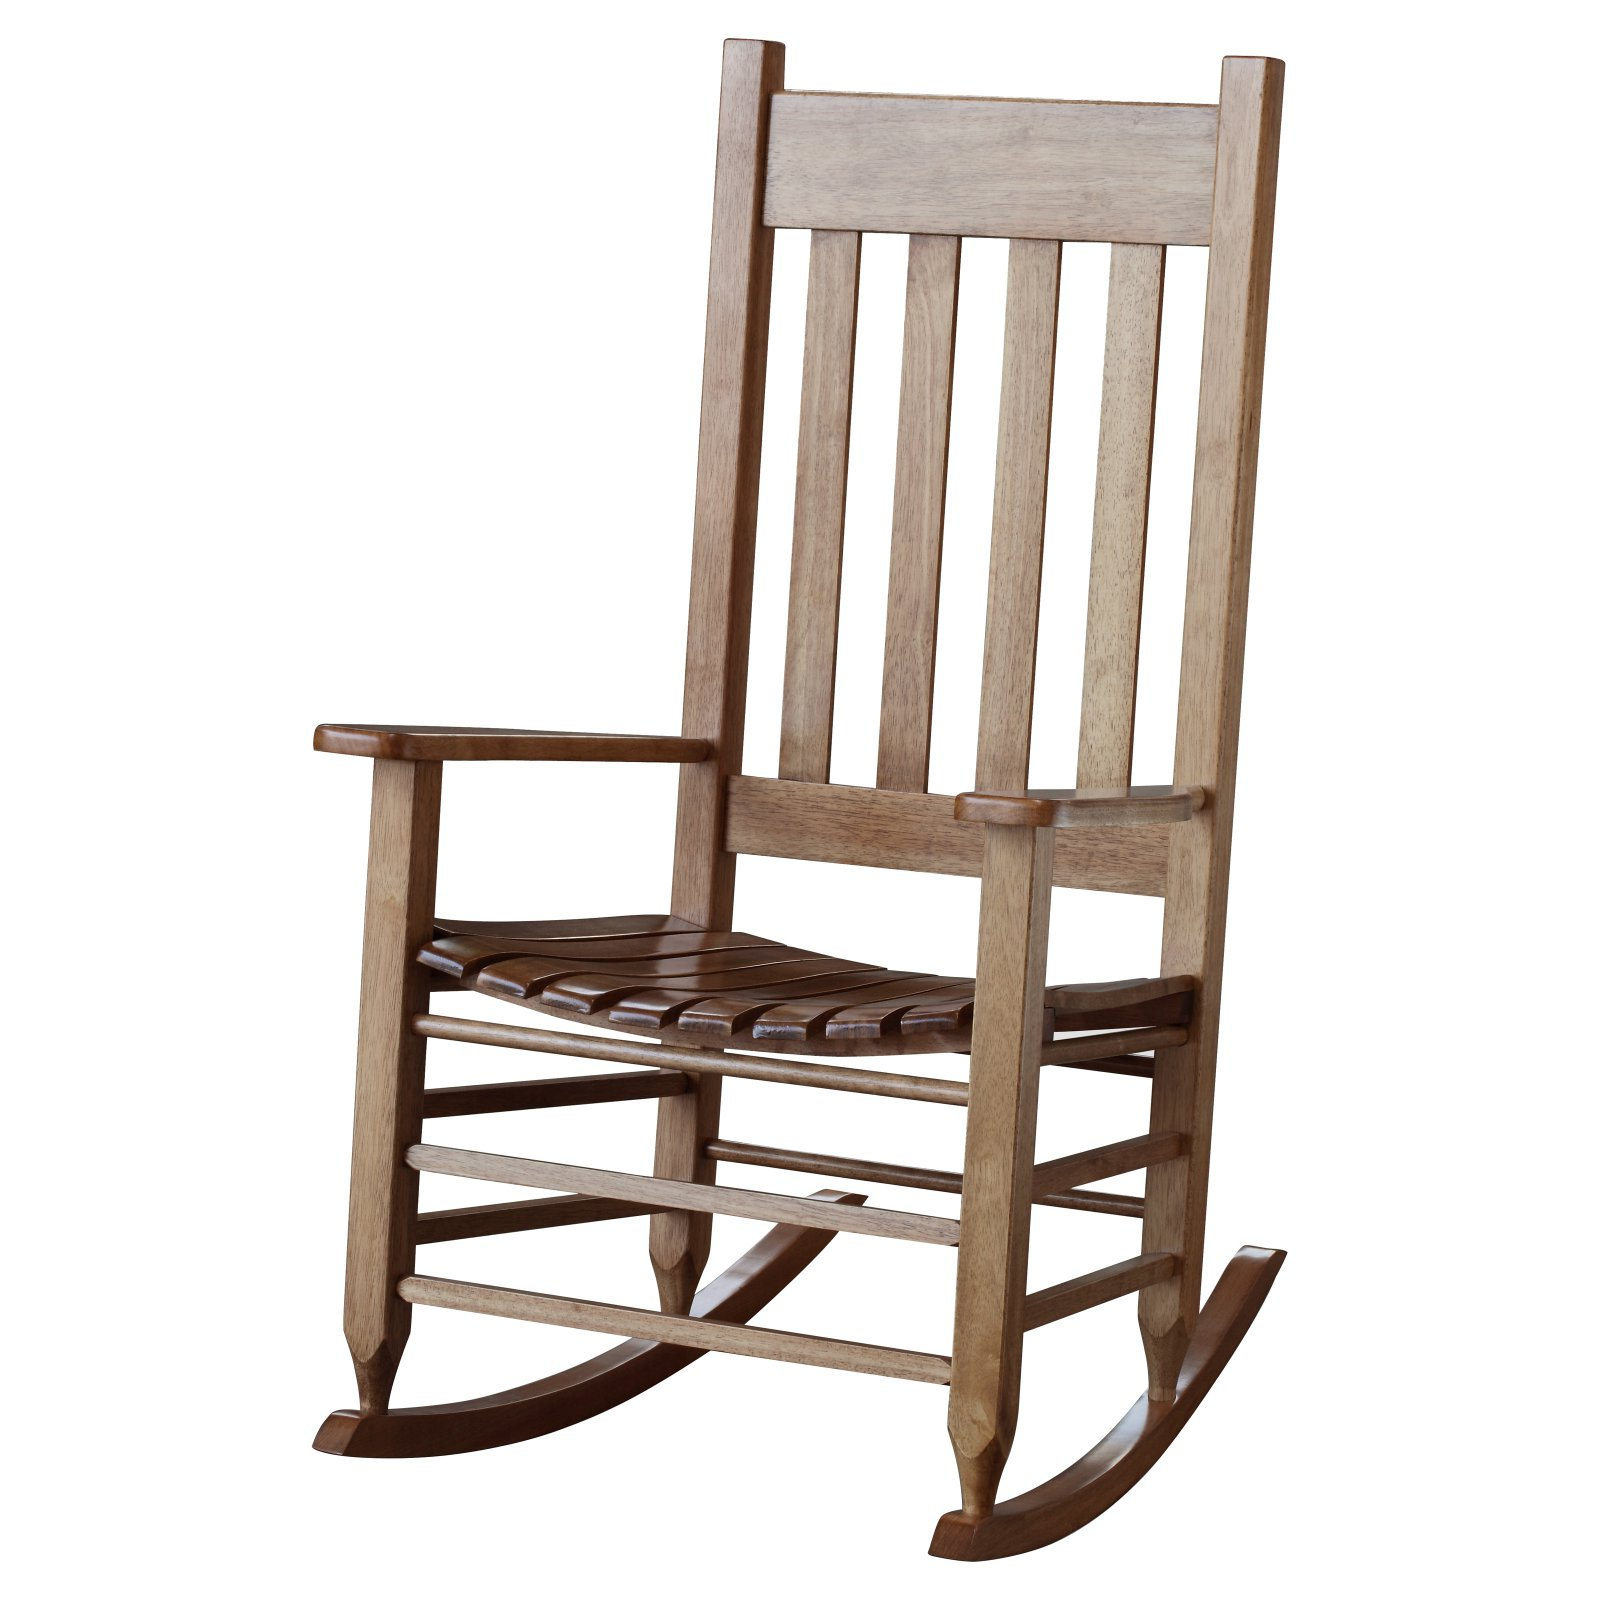 Hinkle Chair Company Plantation Outdoor Rocking Chair   Walmart.com